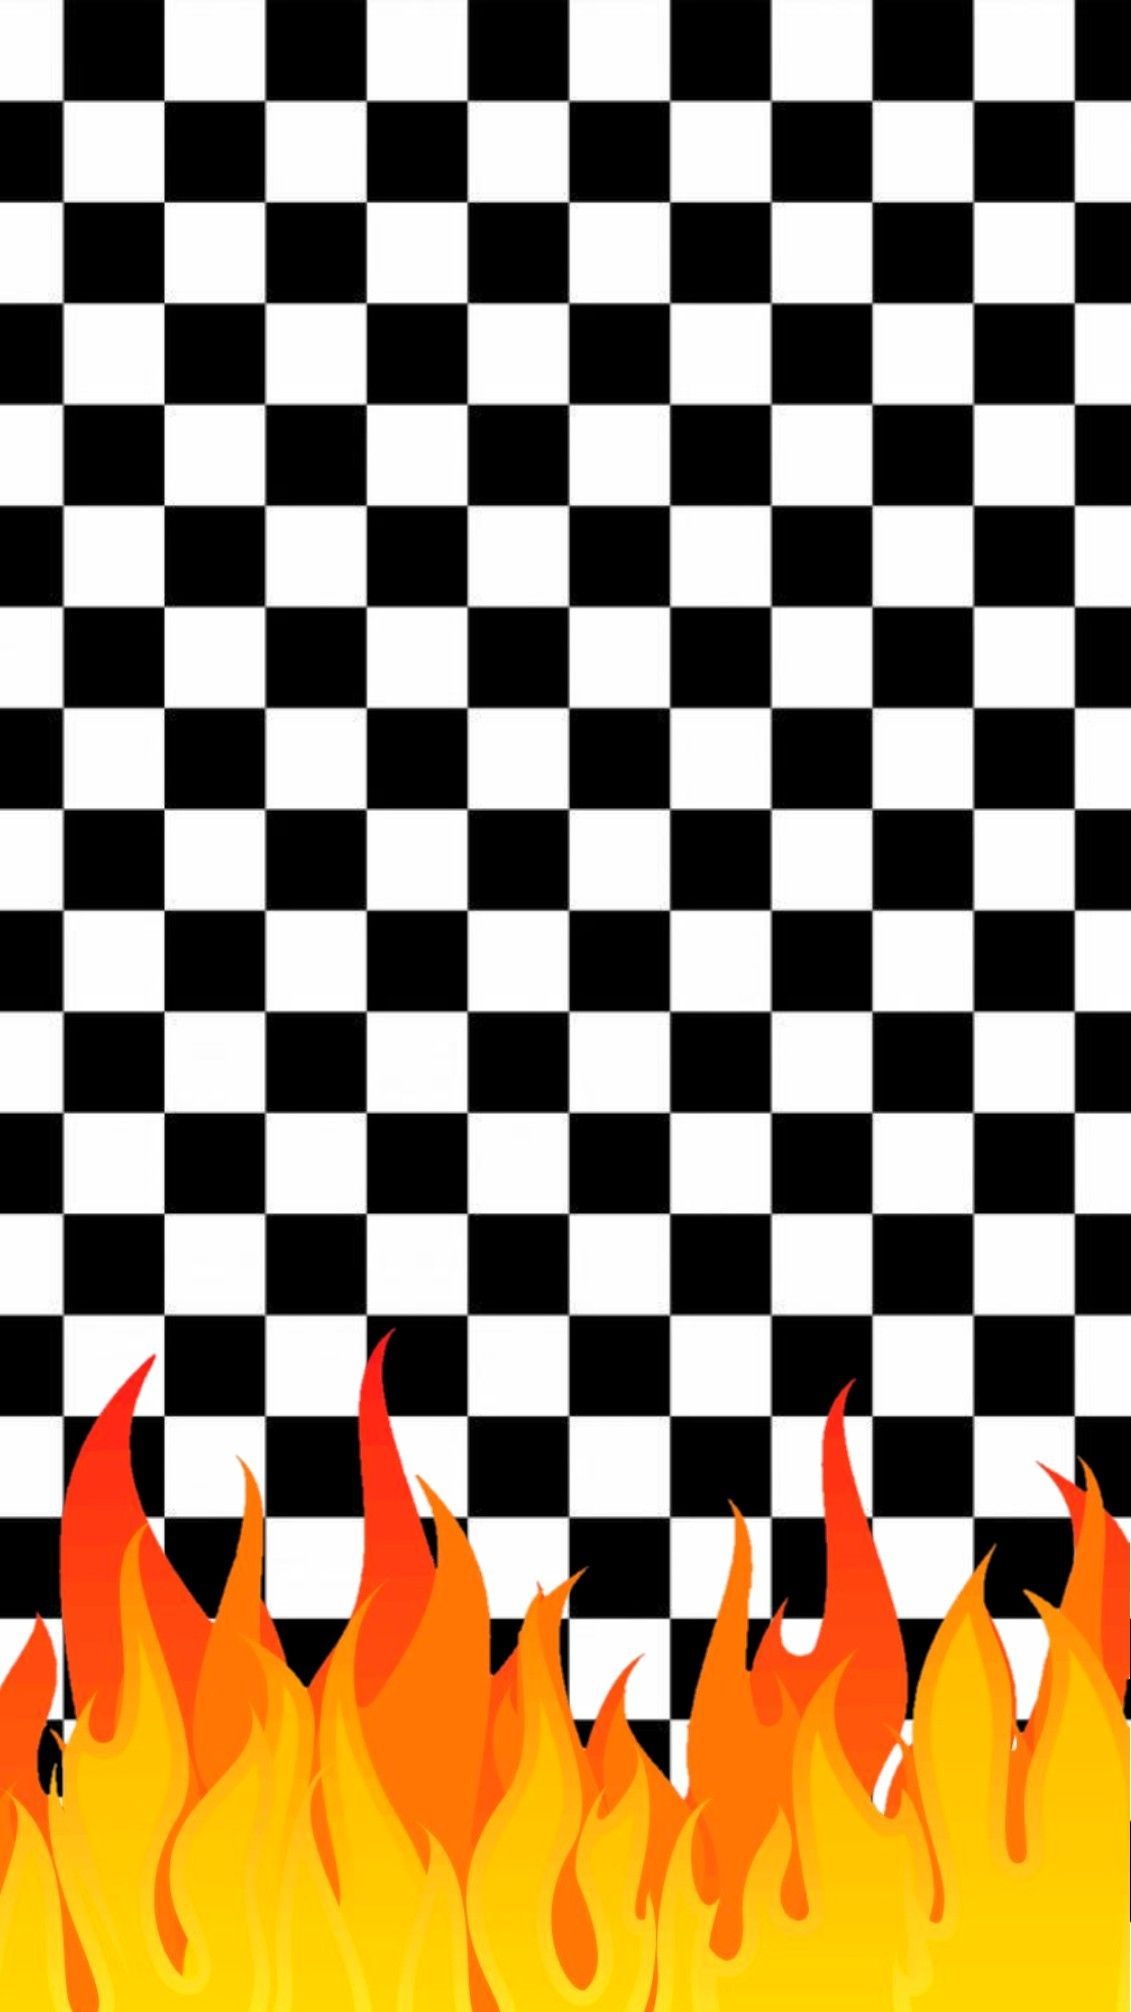 Fire Aesthetic Wallpapers Top Free Fire Aesthetic